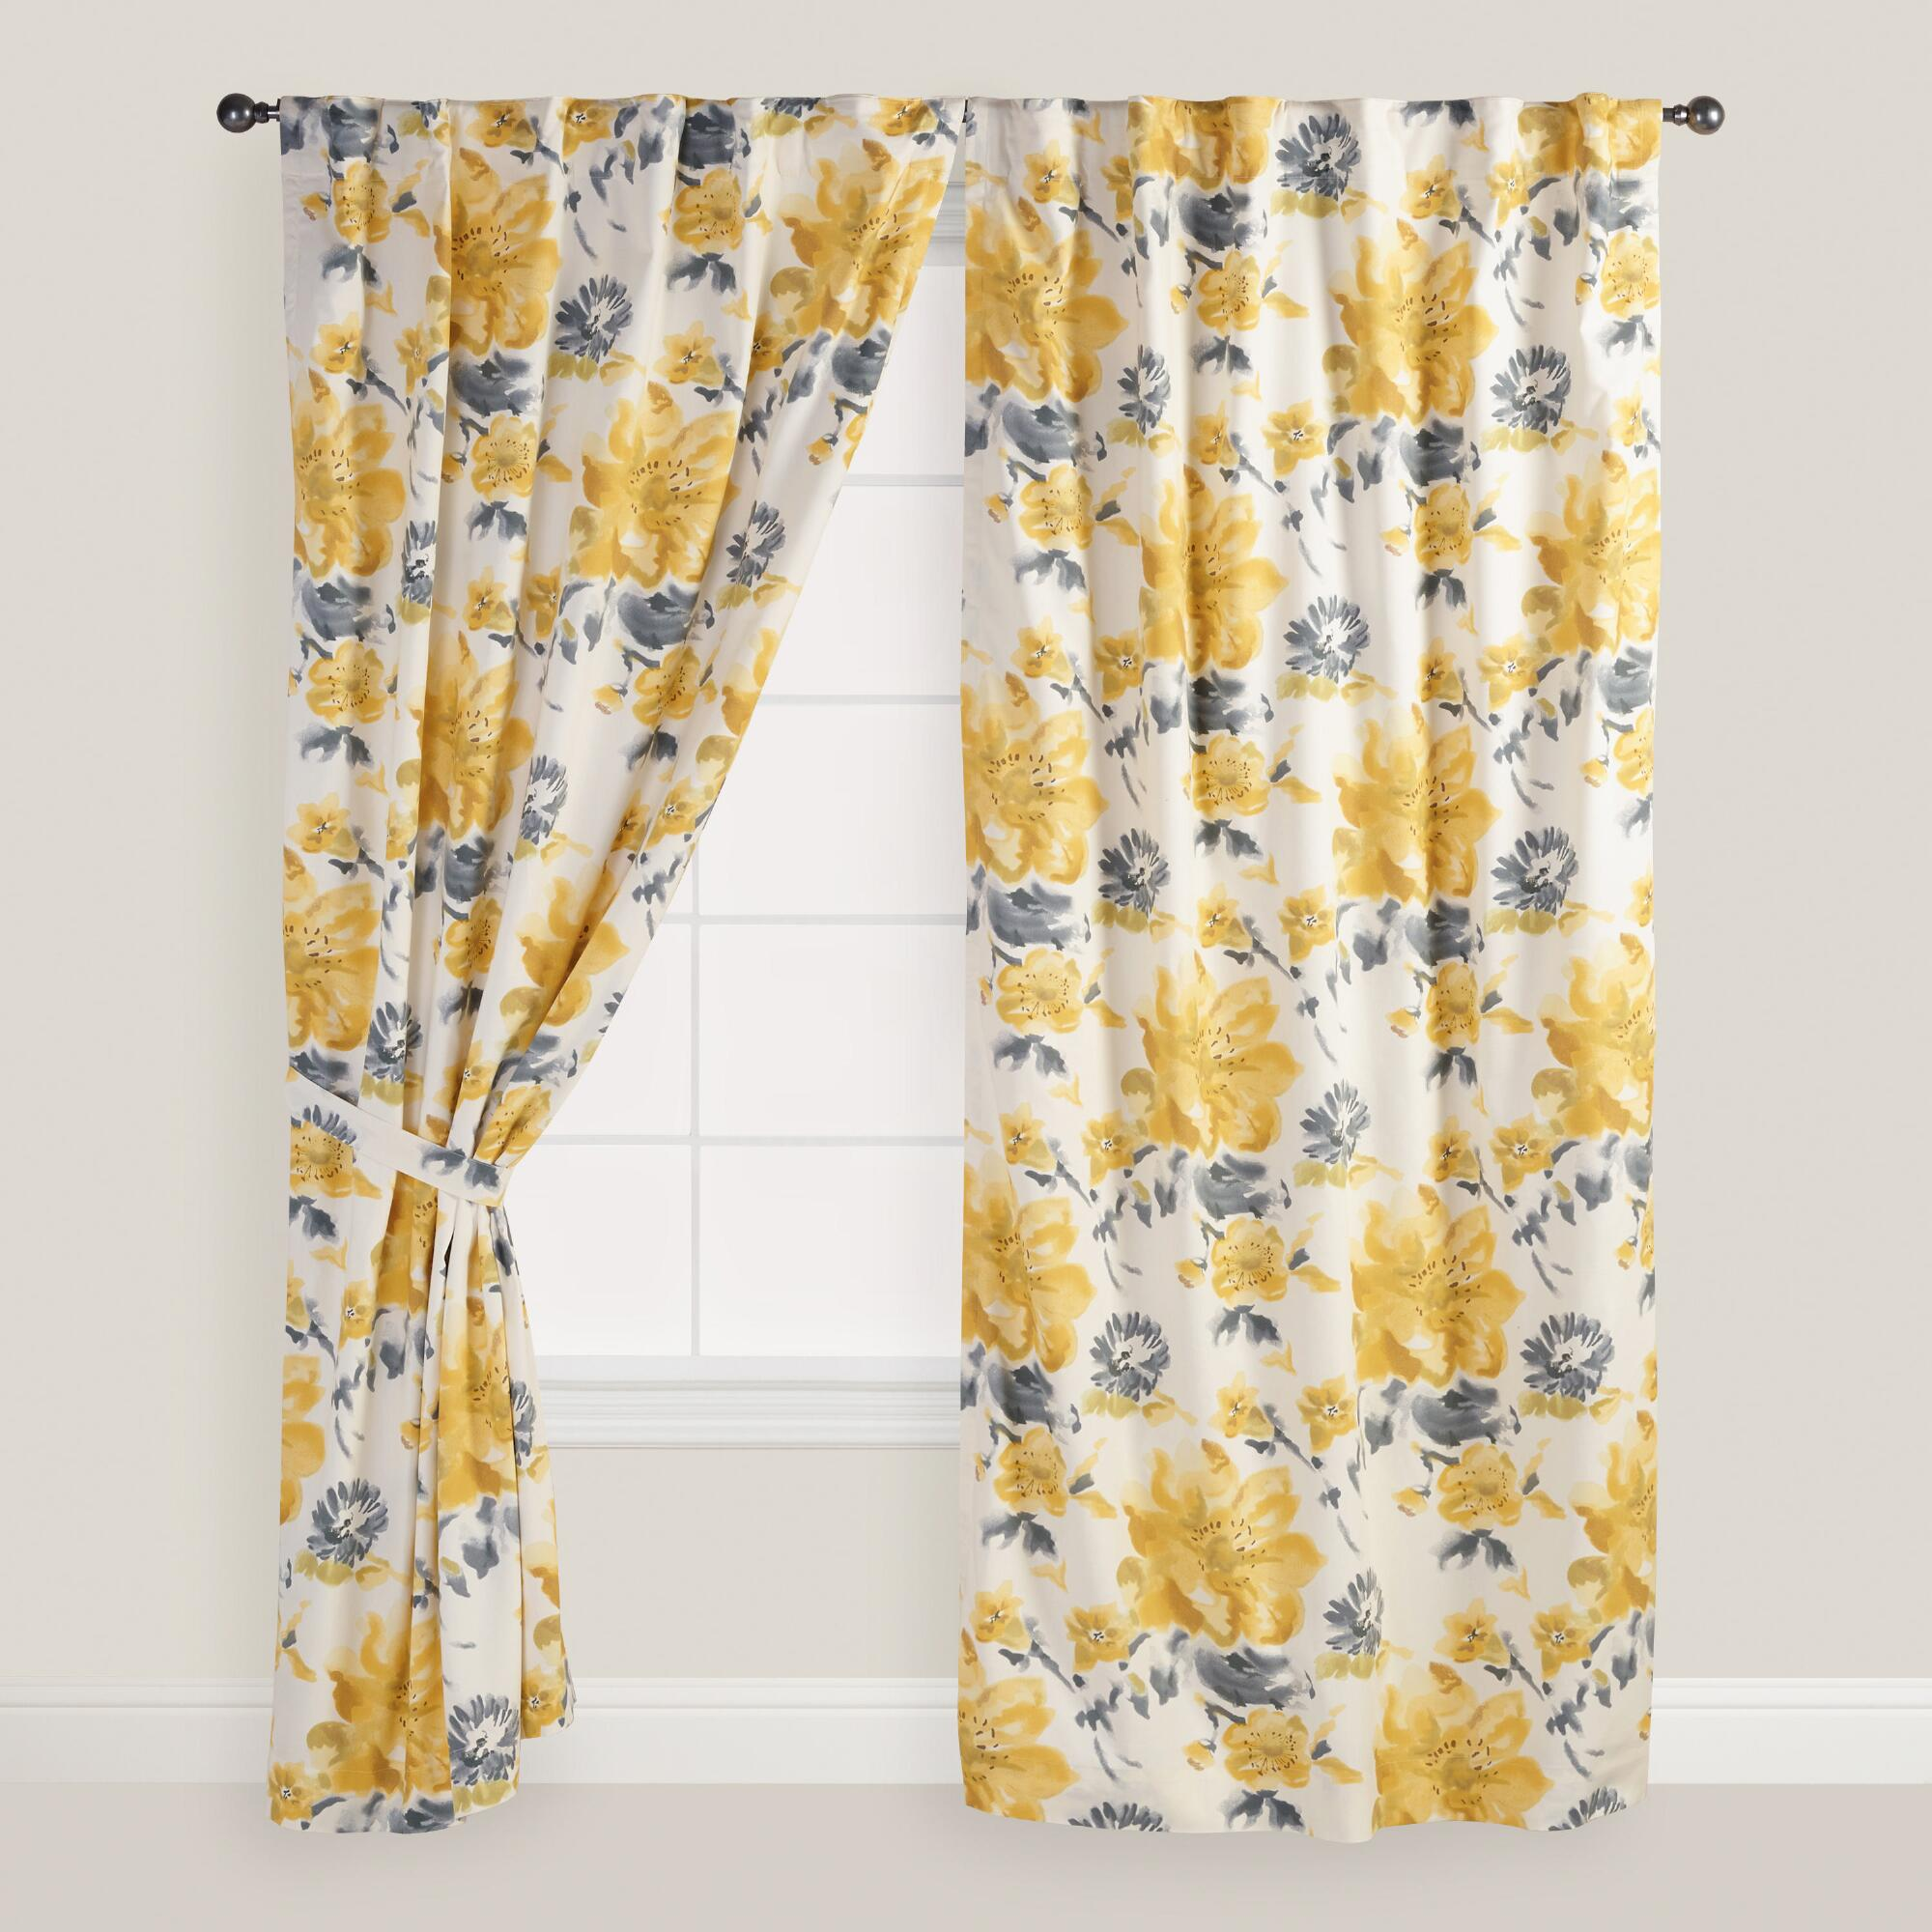 Kitchen Curtains Yellow And Gray: Yellow And Gray Floral Fleurs Curtains, Set Of 2